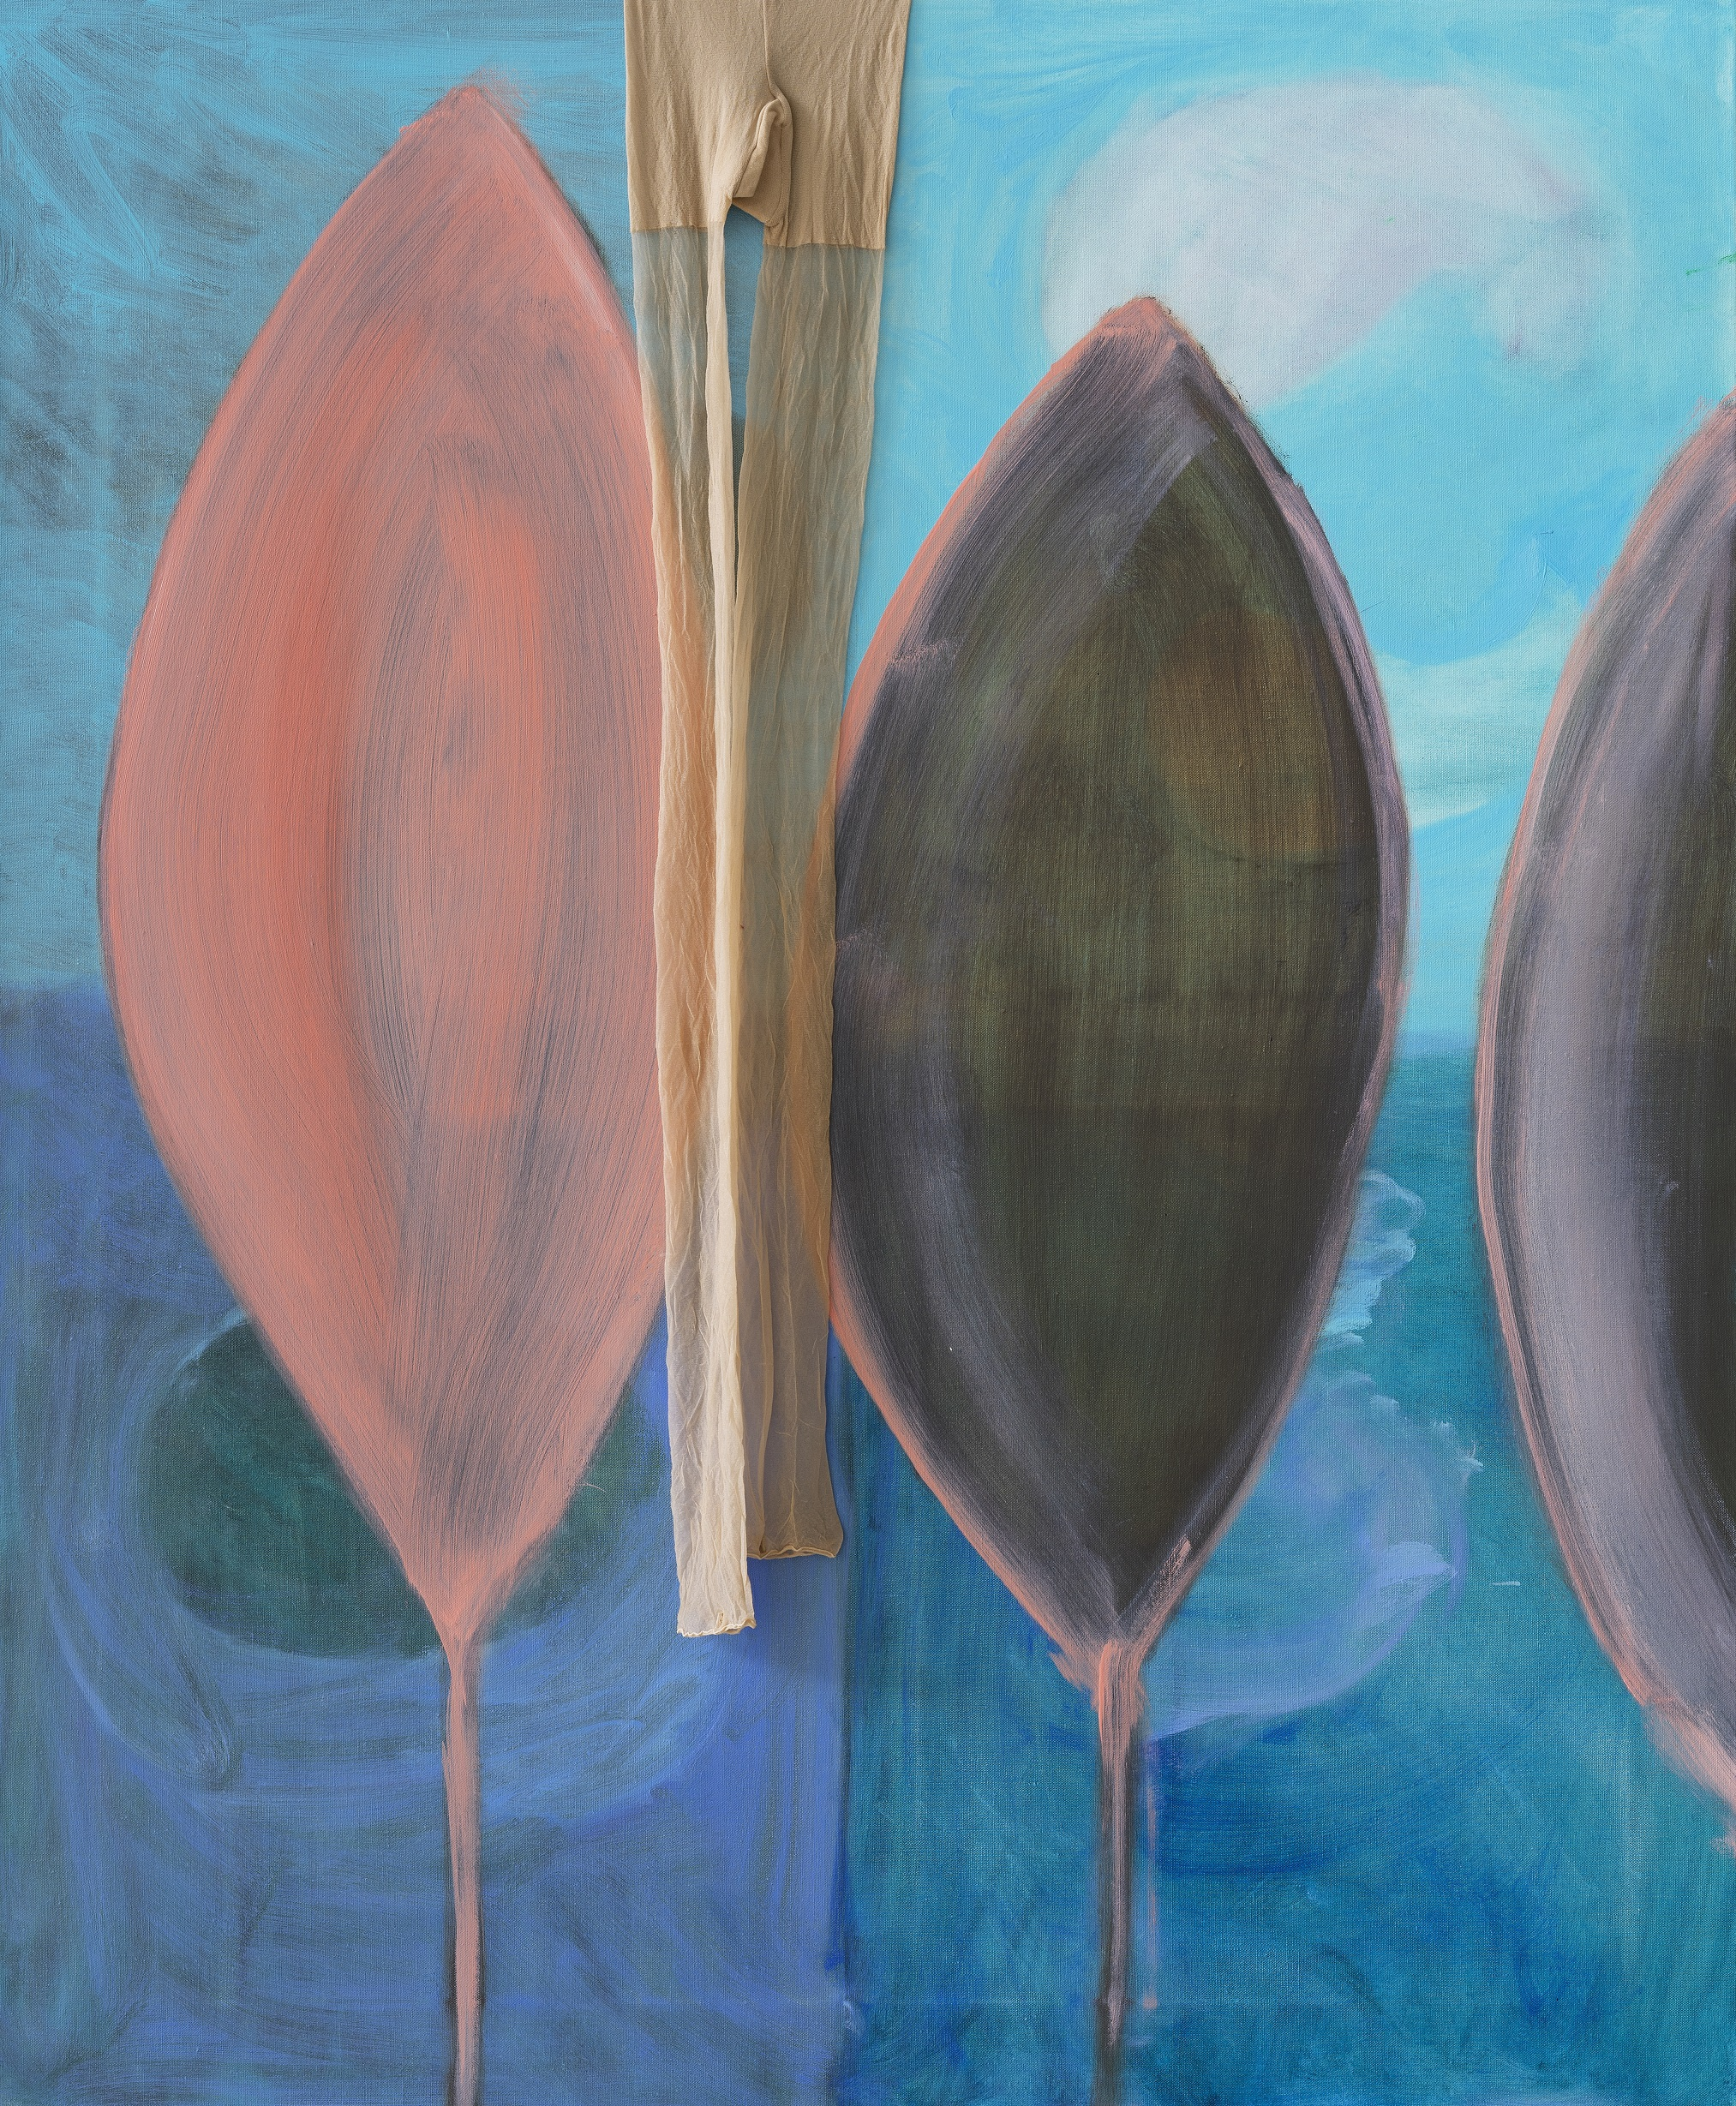 A painting showing three pink and black leaf-like forms standing vertically against a background of sea and sky. A pair of peach tights hangs over the centre of the painting.